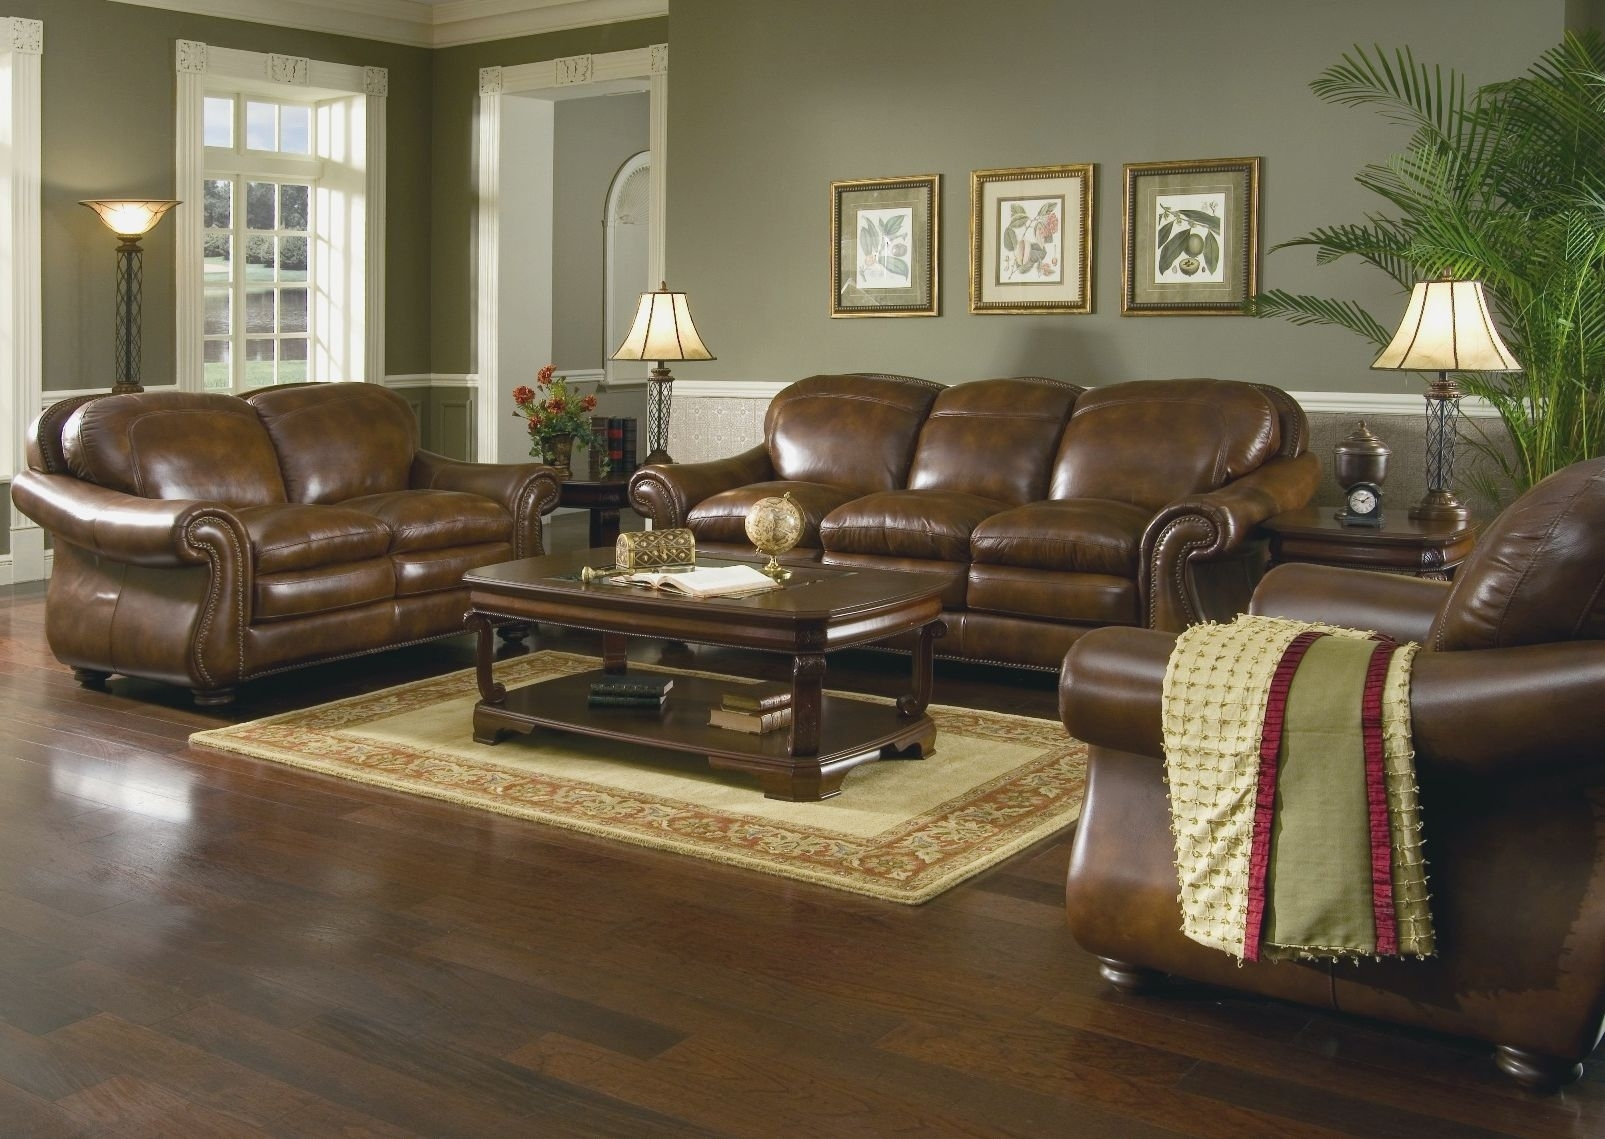 Living Room : Dark Brown Couch Living Room Decor Relaxed Modern Regarding Latest Brown Couch Wall Accents (Gallery 9 of 15)